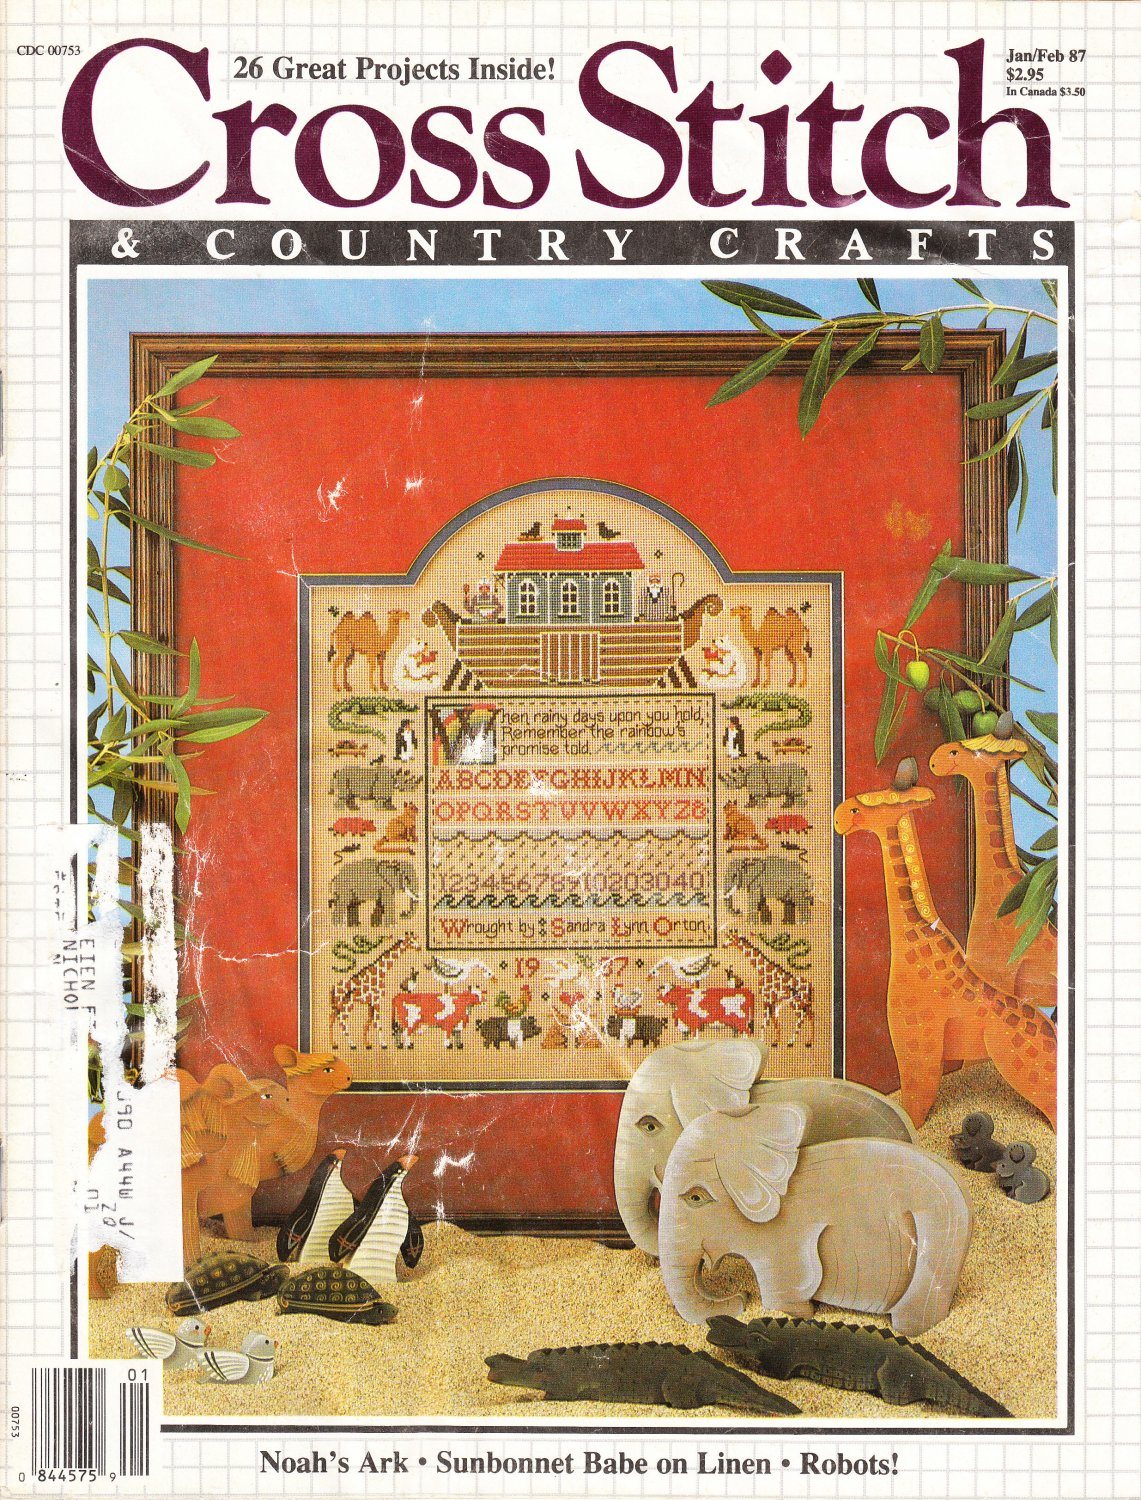 Cross Stitch & Country Crafts Jan/Feb 1987 Magazine Issue Vol. II No. 3